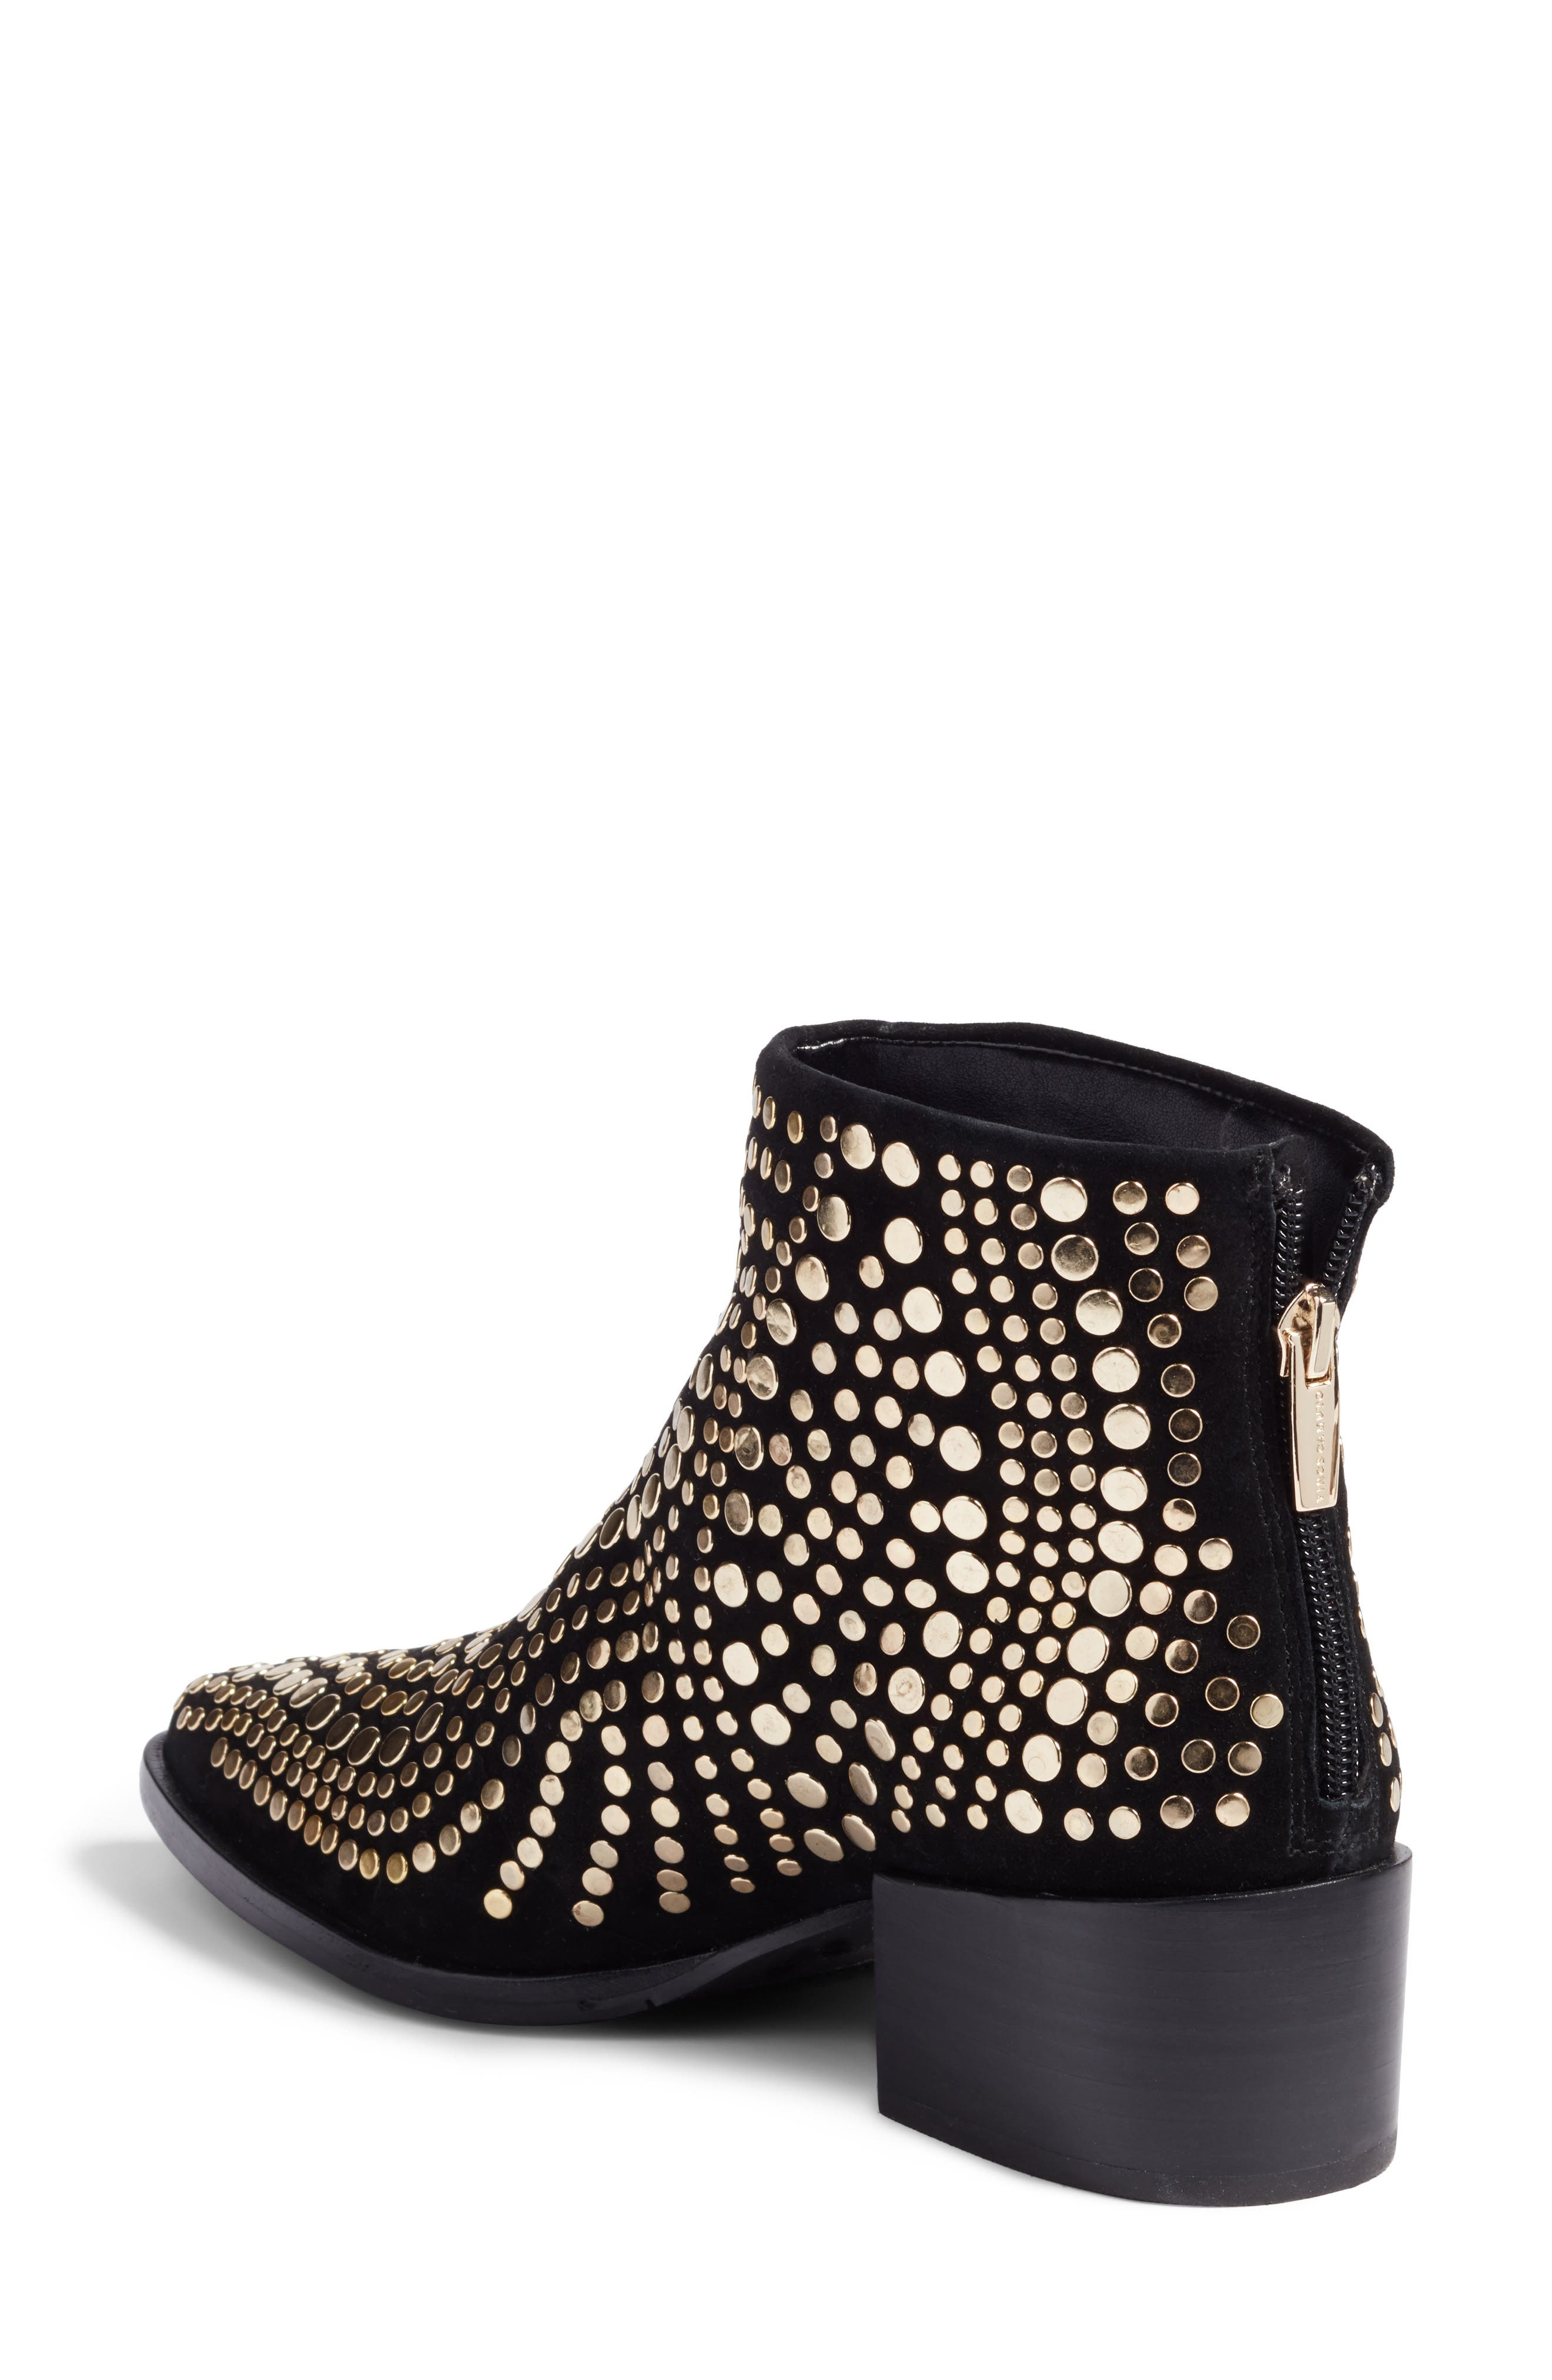 Edenny Studded Pointy Toe Bootie,                             Alternate thumbnail 2, color,                             002